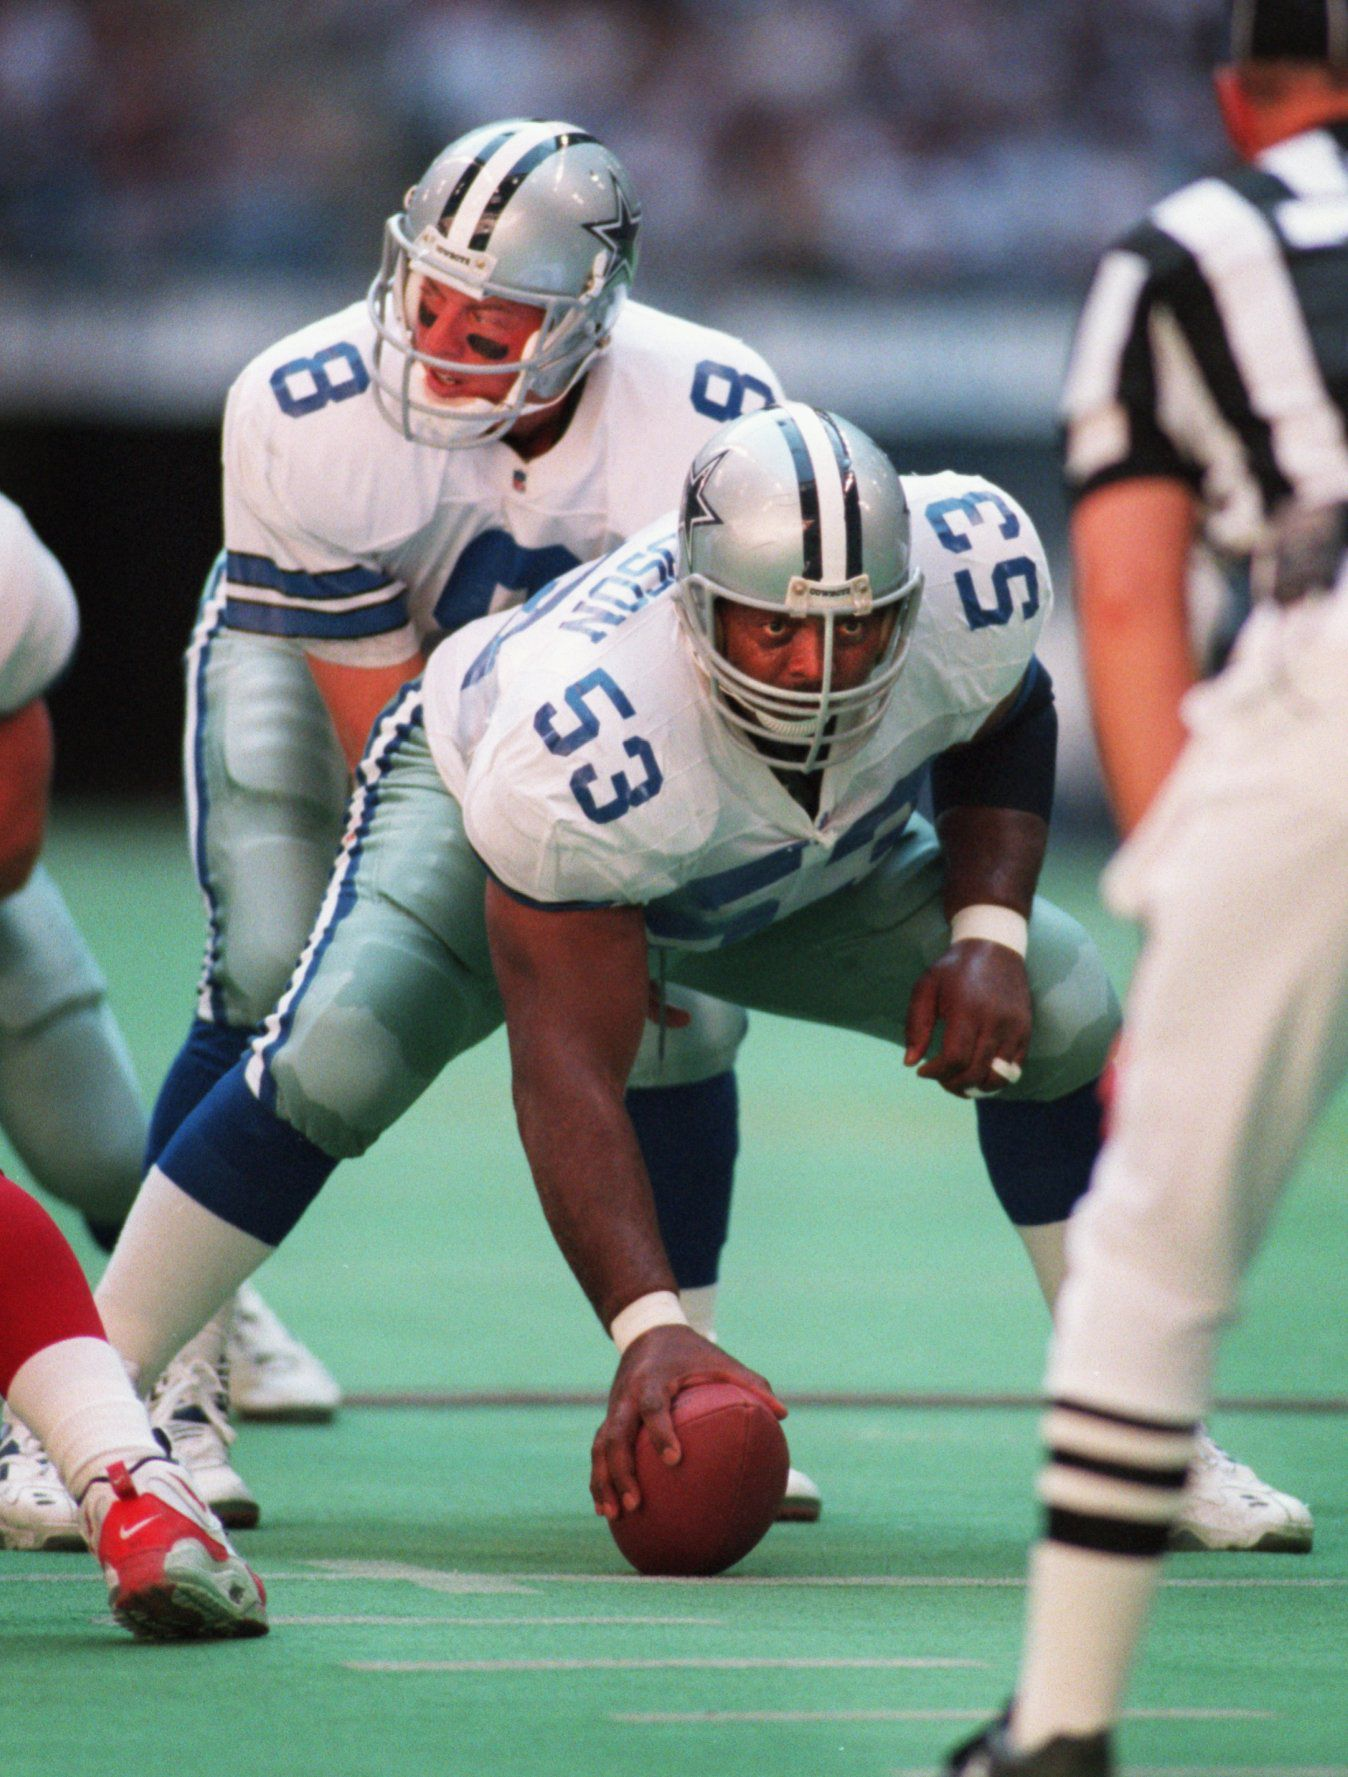 Dallas Cowboys center Ray  Donaldson (53) prepares to lays the pigskin into the hands of  quarterback Troy Aikman (8) during the second half of the Phoenix  Cardinals Vs. Dallas Cowboys game at Texas Stadium Sunday  afternoon.